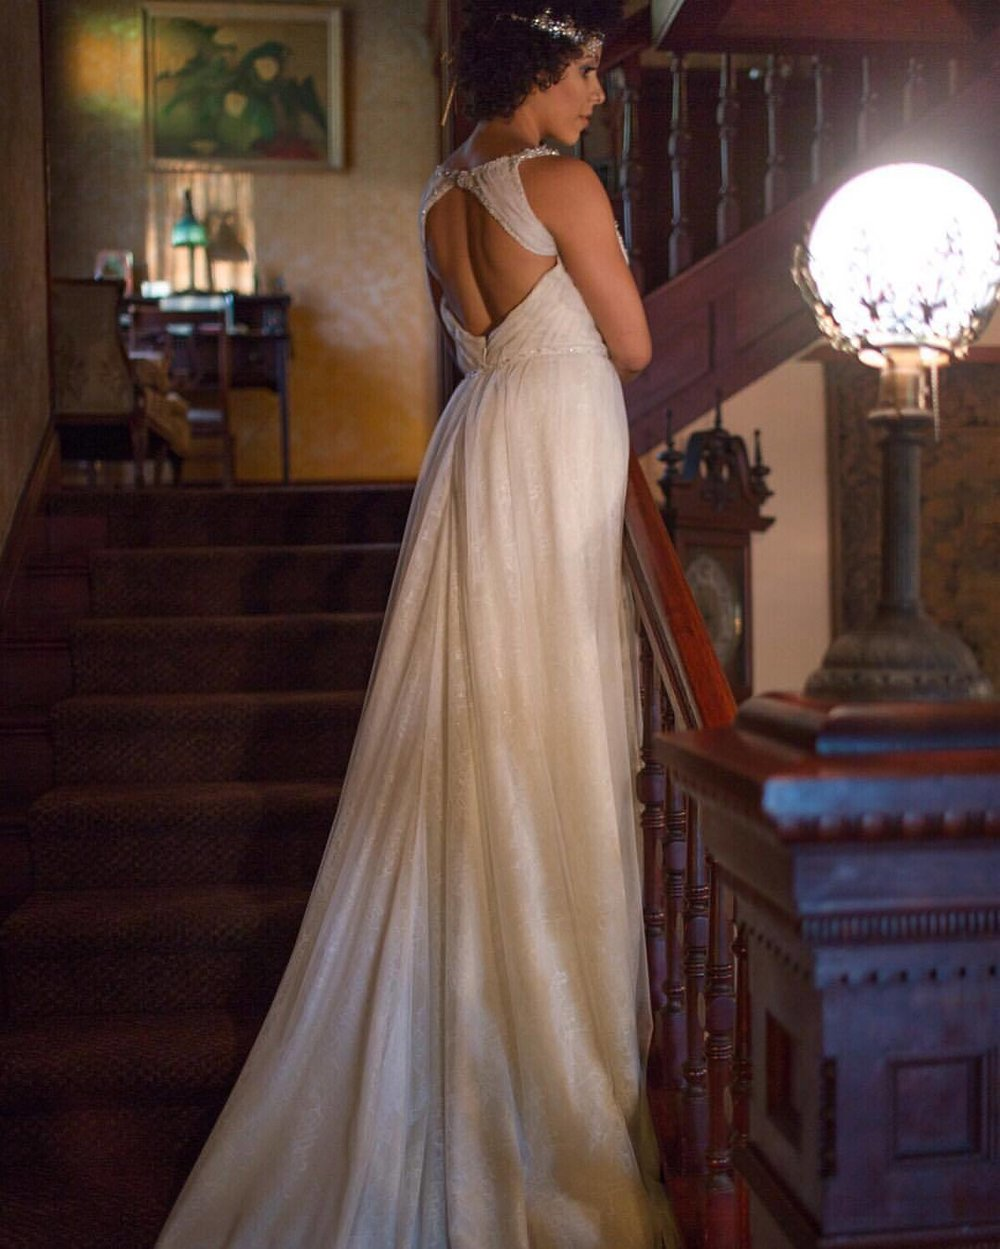 An open back dress can give a sexy, yet sophisticated look on your wedding day. #nunezweddings #romanticweddingdress #weddingfashions #weddinginspo #eventplanning #vintage #longbeach #pdx #vancouverwa (at The Bembridge House)